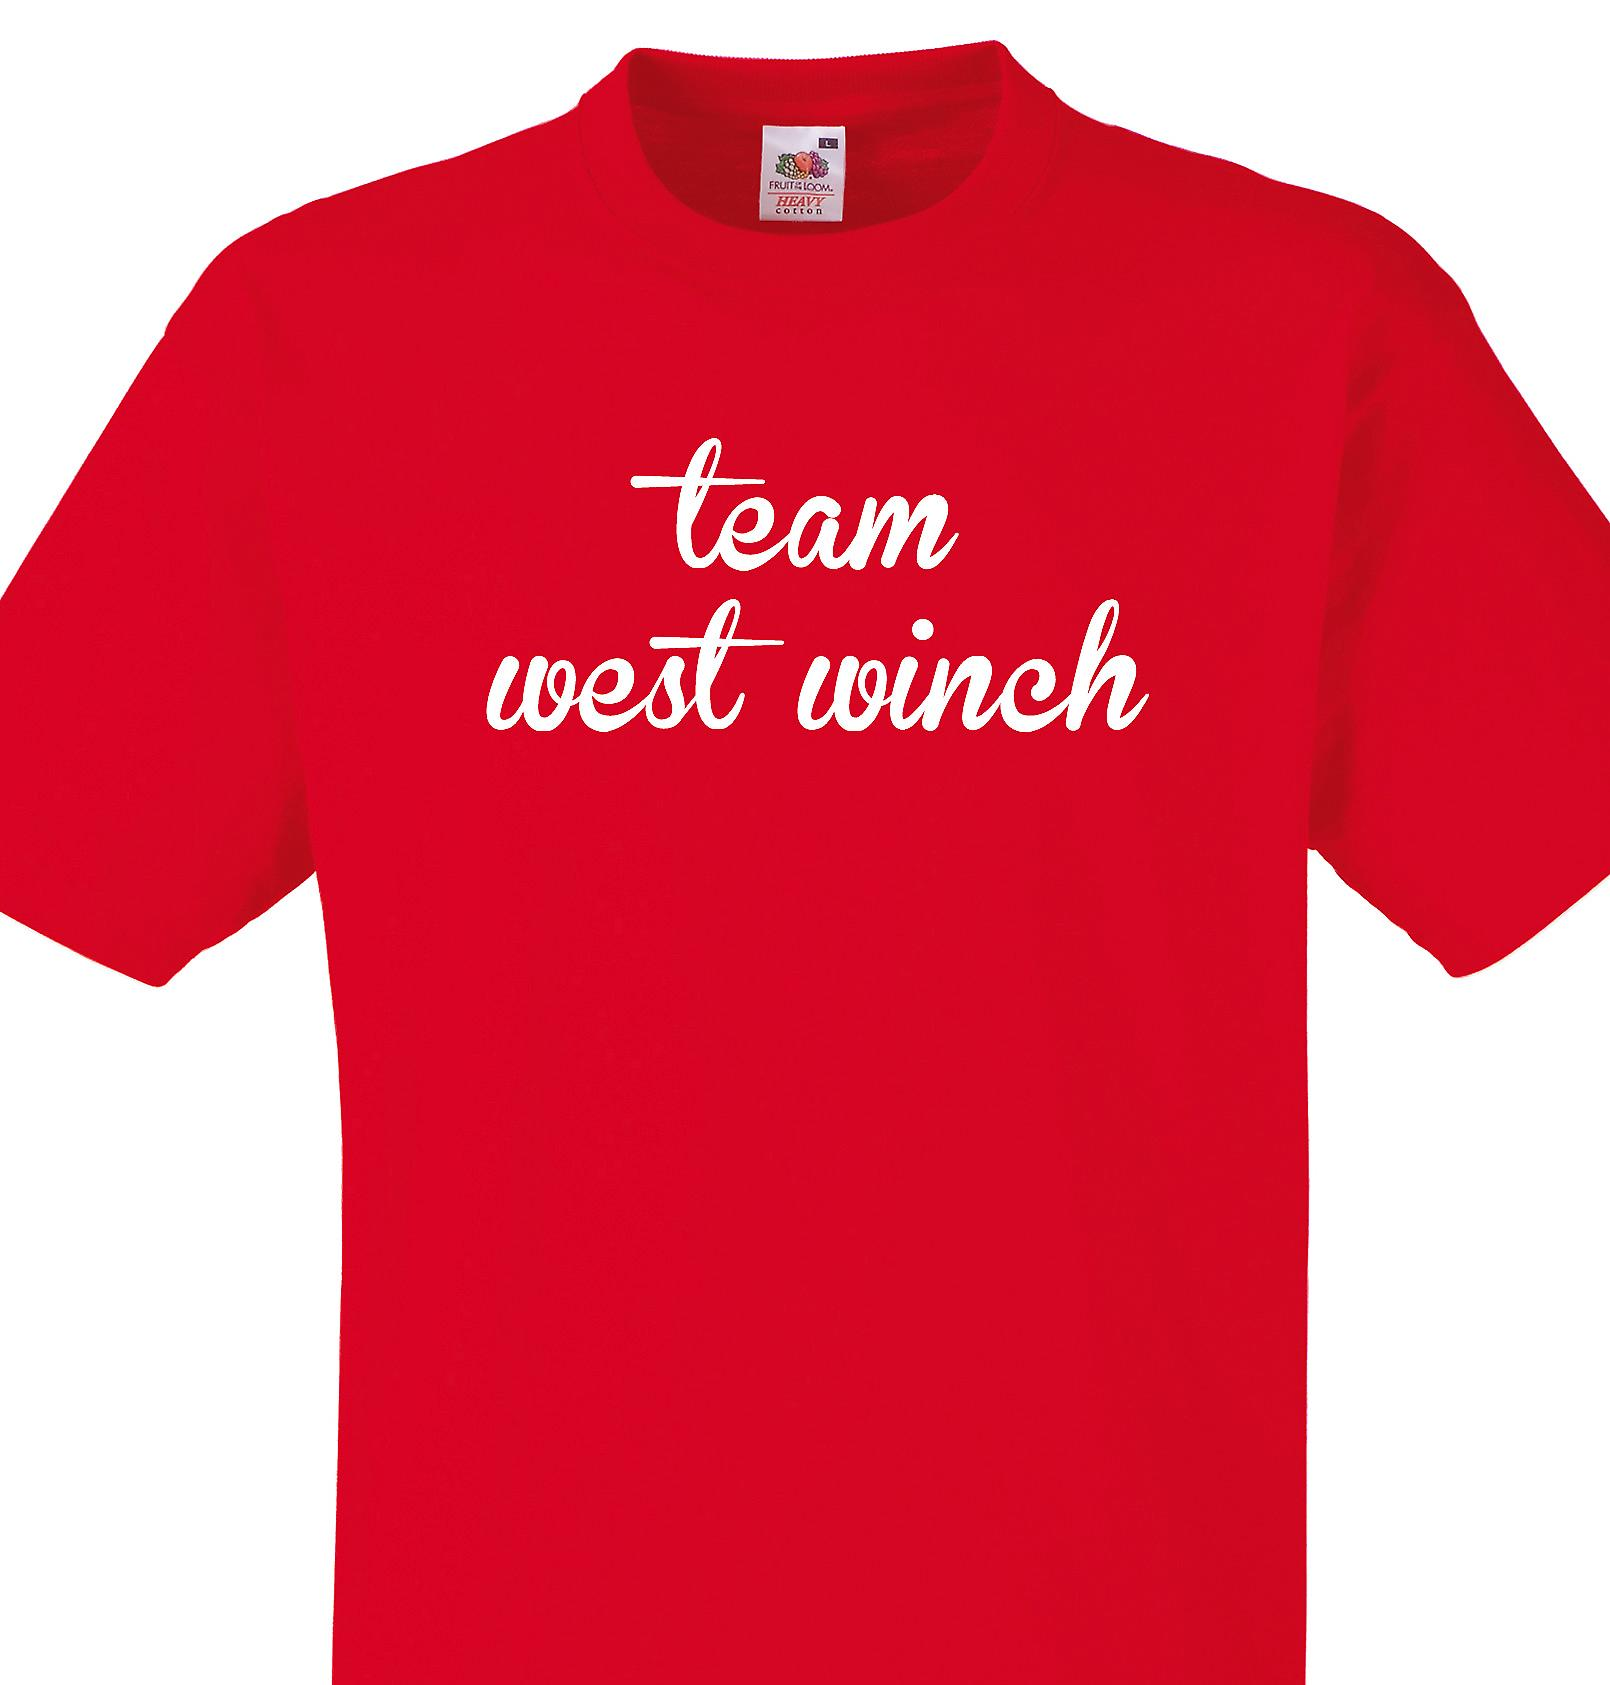 Team West winch Red T shirt